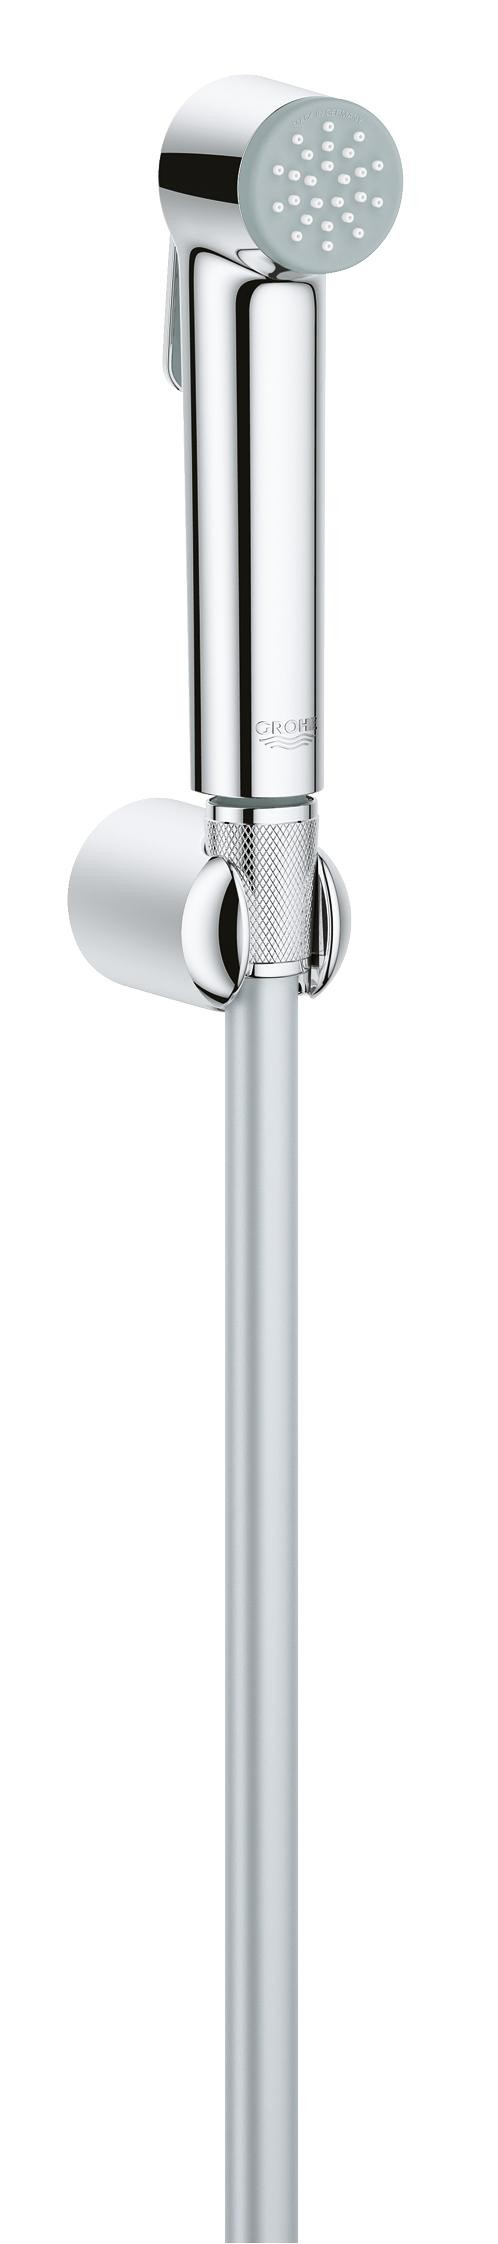 Набор Grohe Tempesta-f 26352000